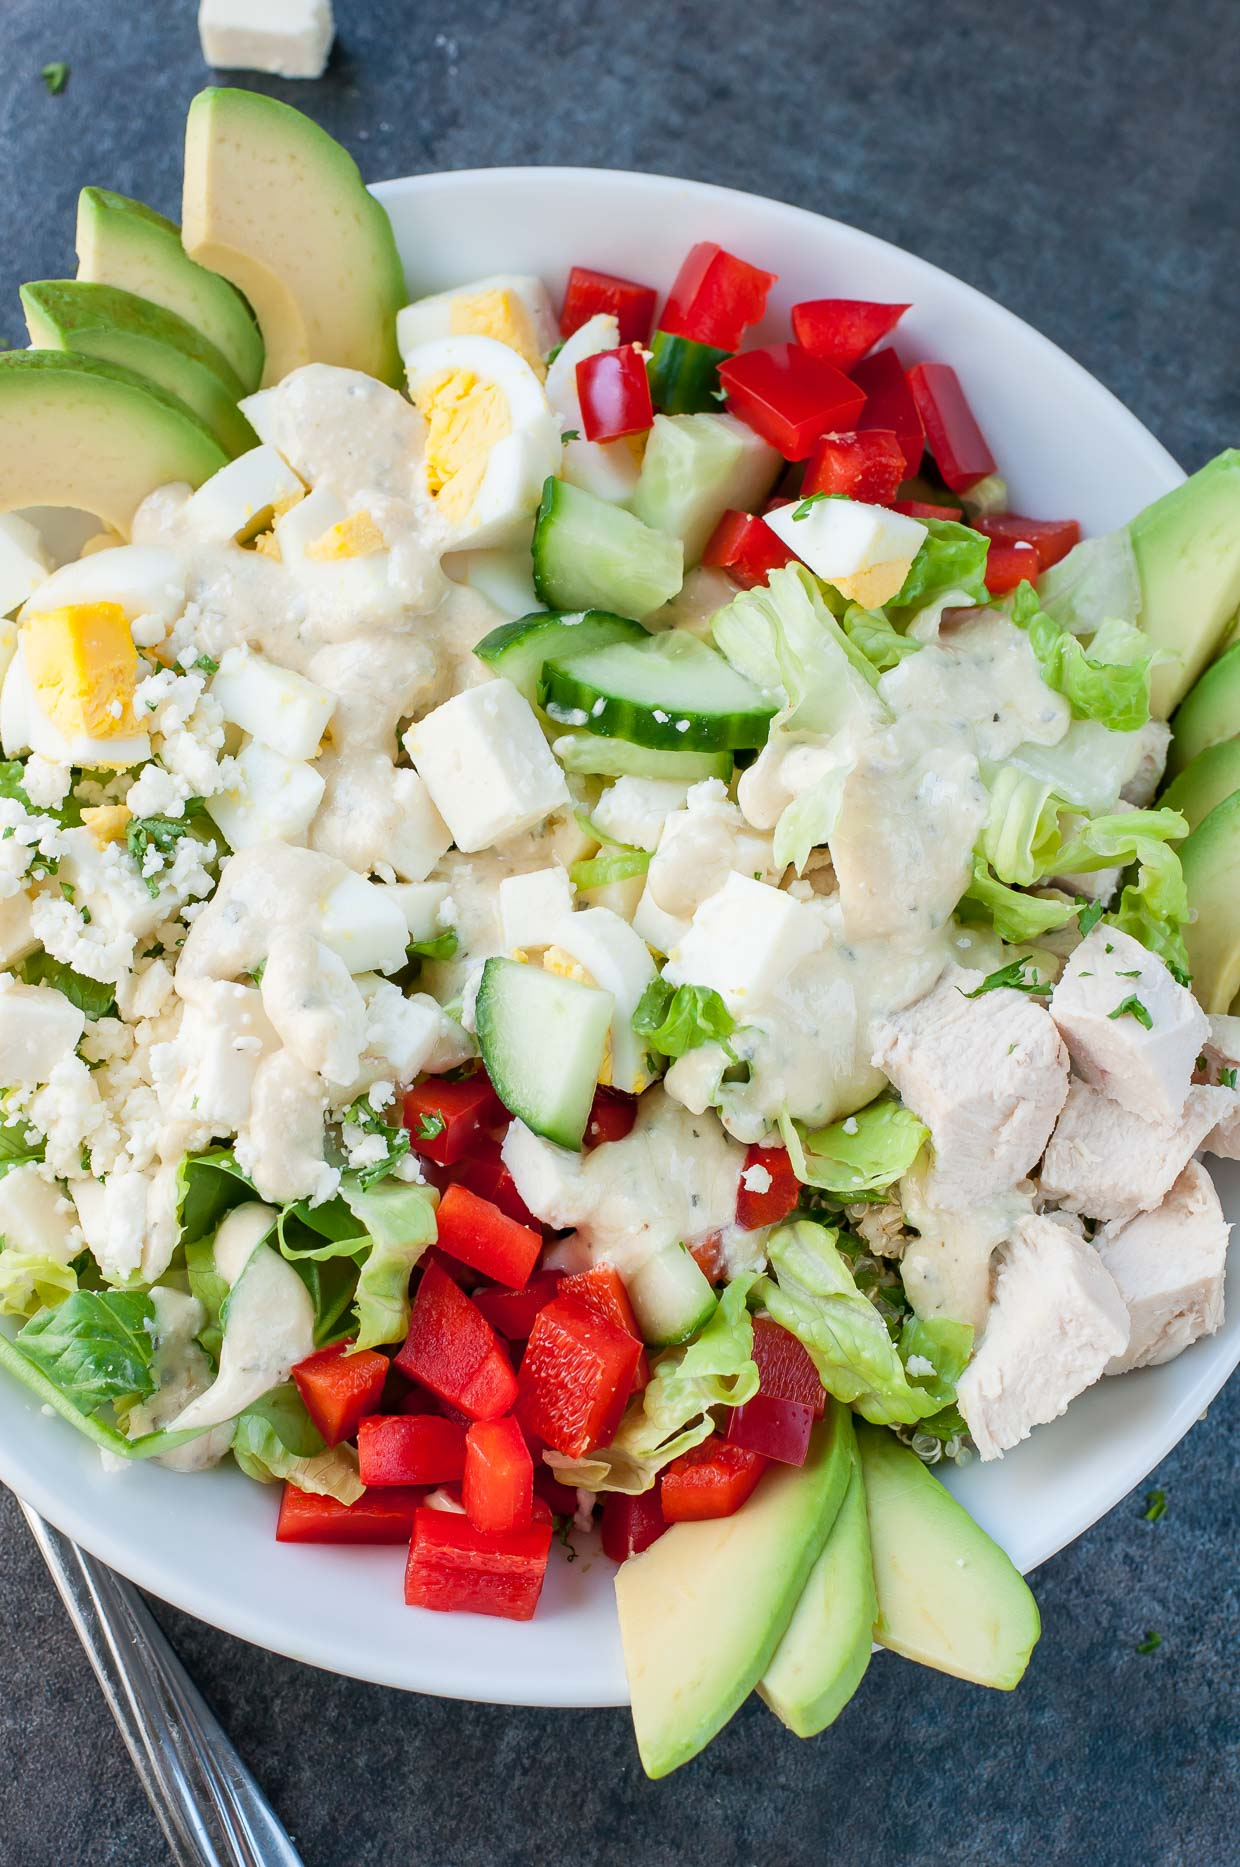 Kick up the classic cobb salad with a Mediterranean twist! This Greek Cobb Salad is loaded with flavor and makes a great healthy lunch at home or on the go!